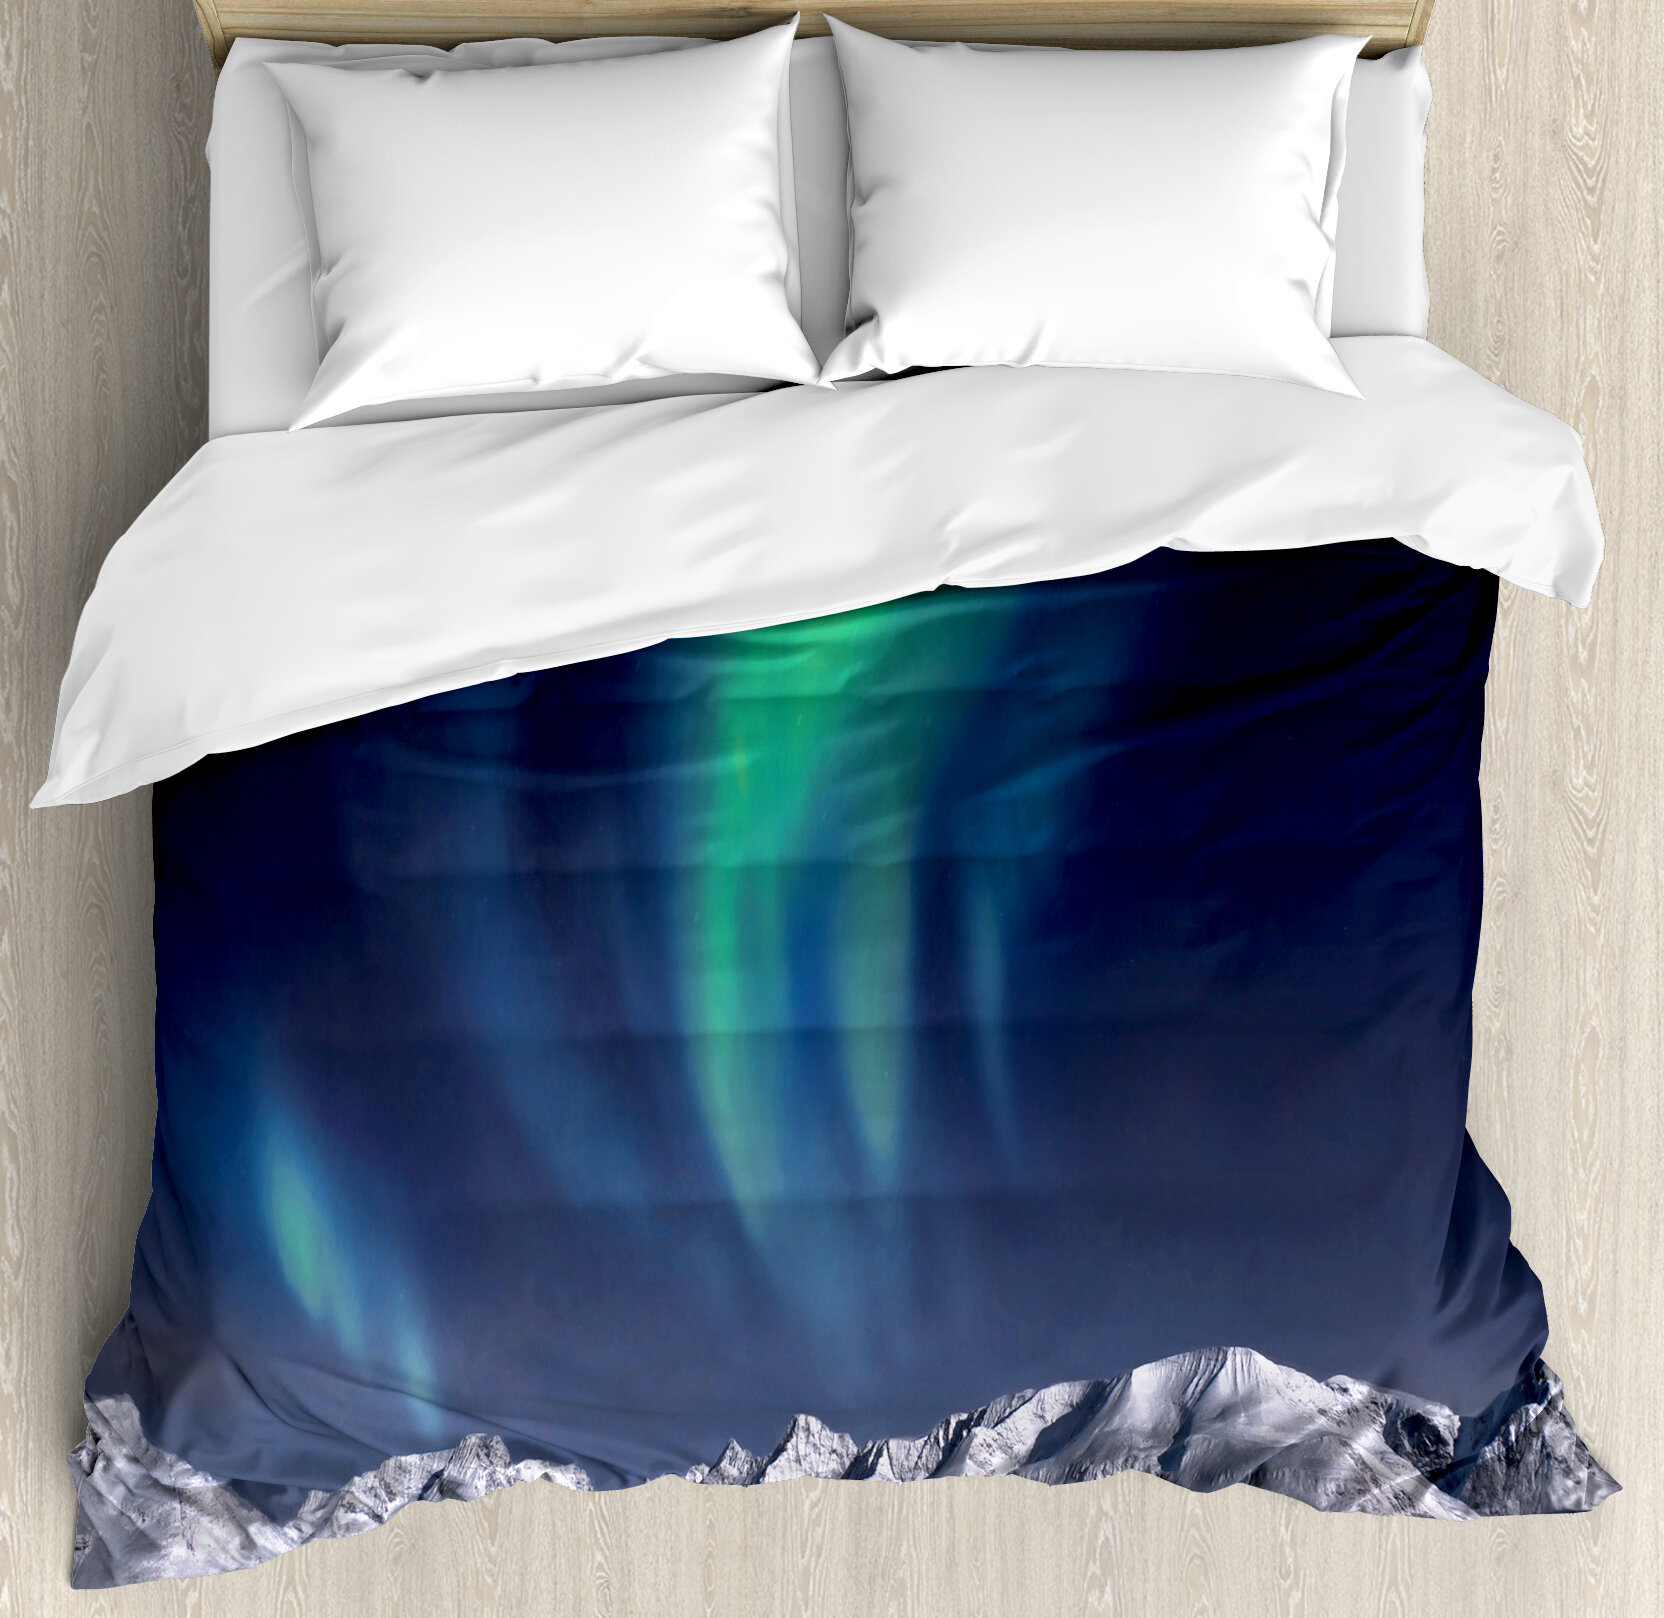 East Urban Home Sky Decor King Size Duvet Cover Set Northern Lights